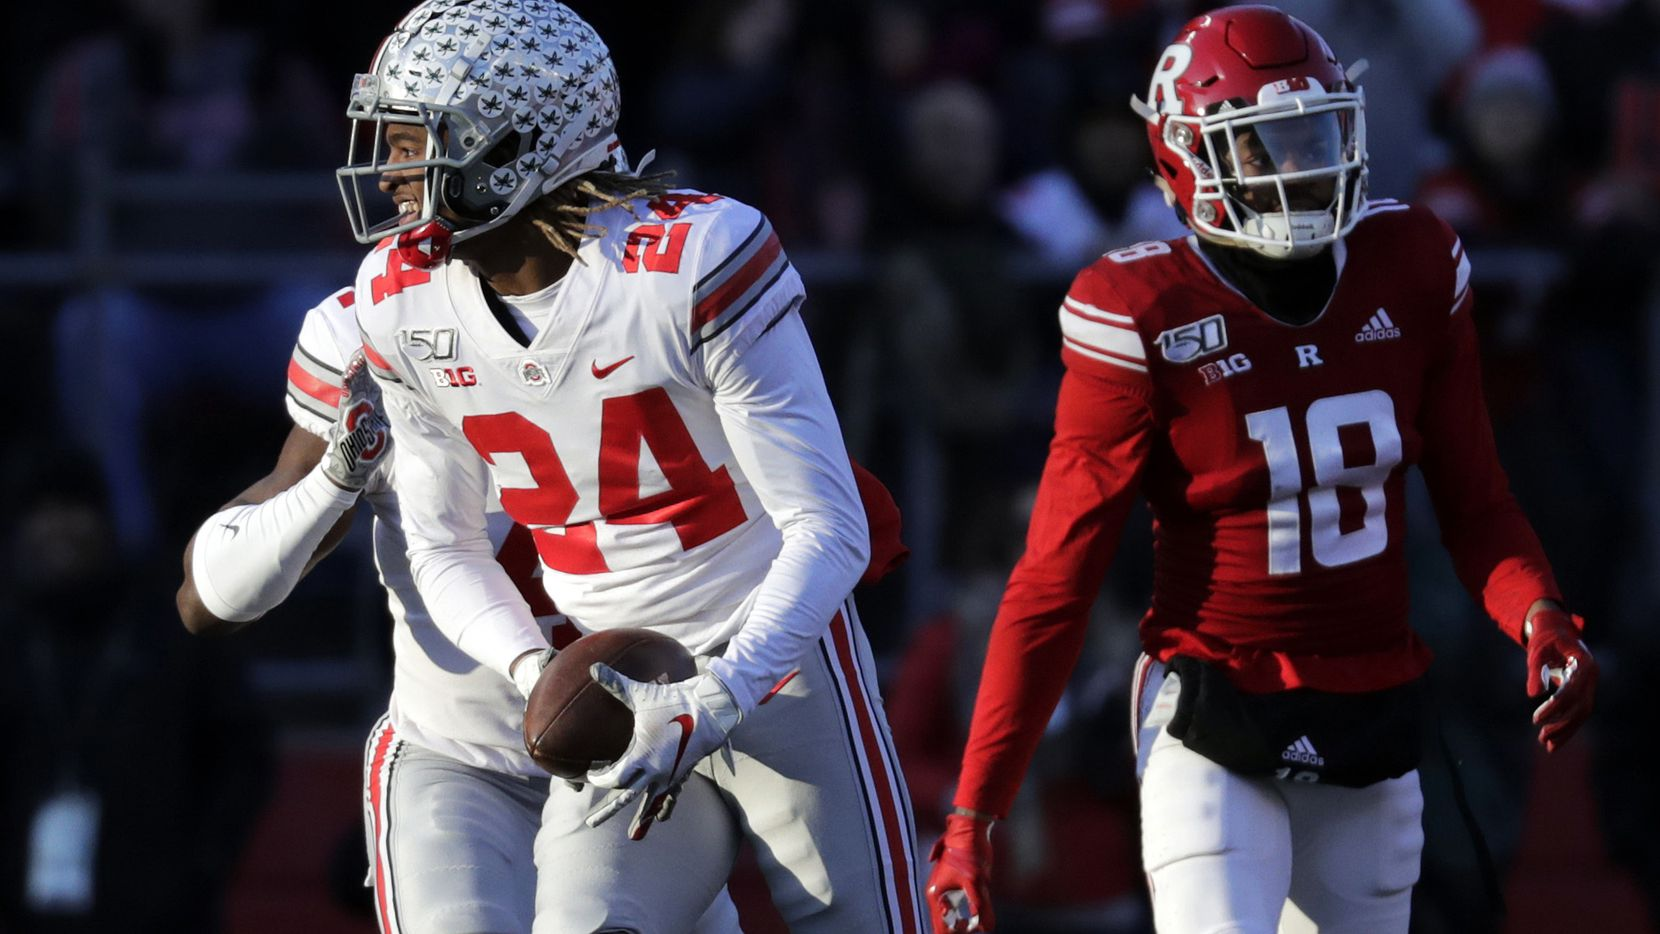 FILE - In this Nov. 16, 2019, file photo, Ohio State cornerback Shaun Wade (24) reacts after making an interception during the first half of a game against Rutgers in Piscataway, N.J. (AP Photo/Adam Hunger, File)